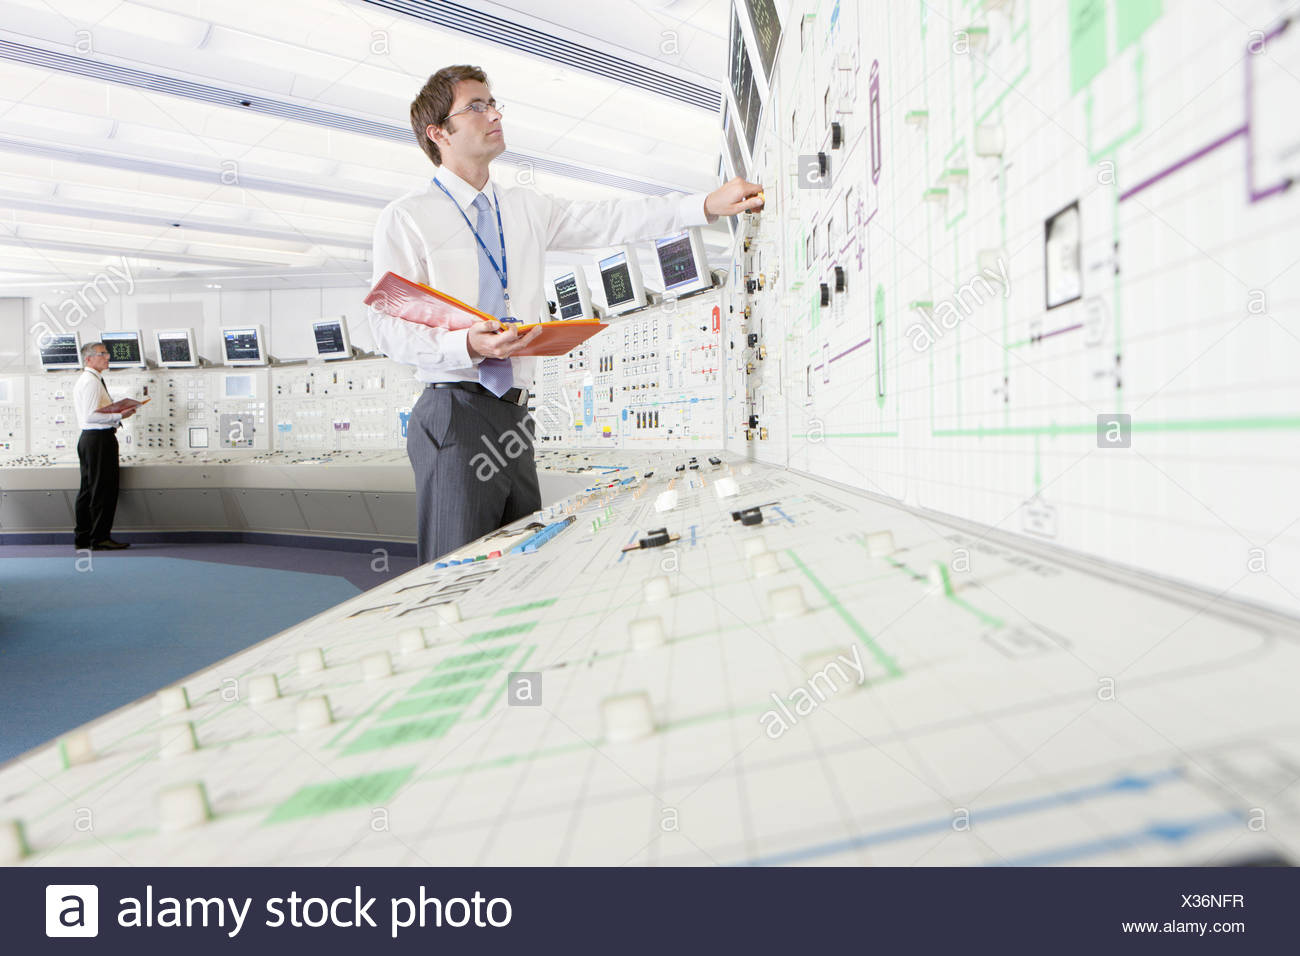 Engineer with binder looking up at computer monitor in control room of nuclear power station Stock Photo